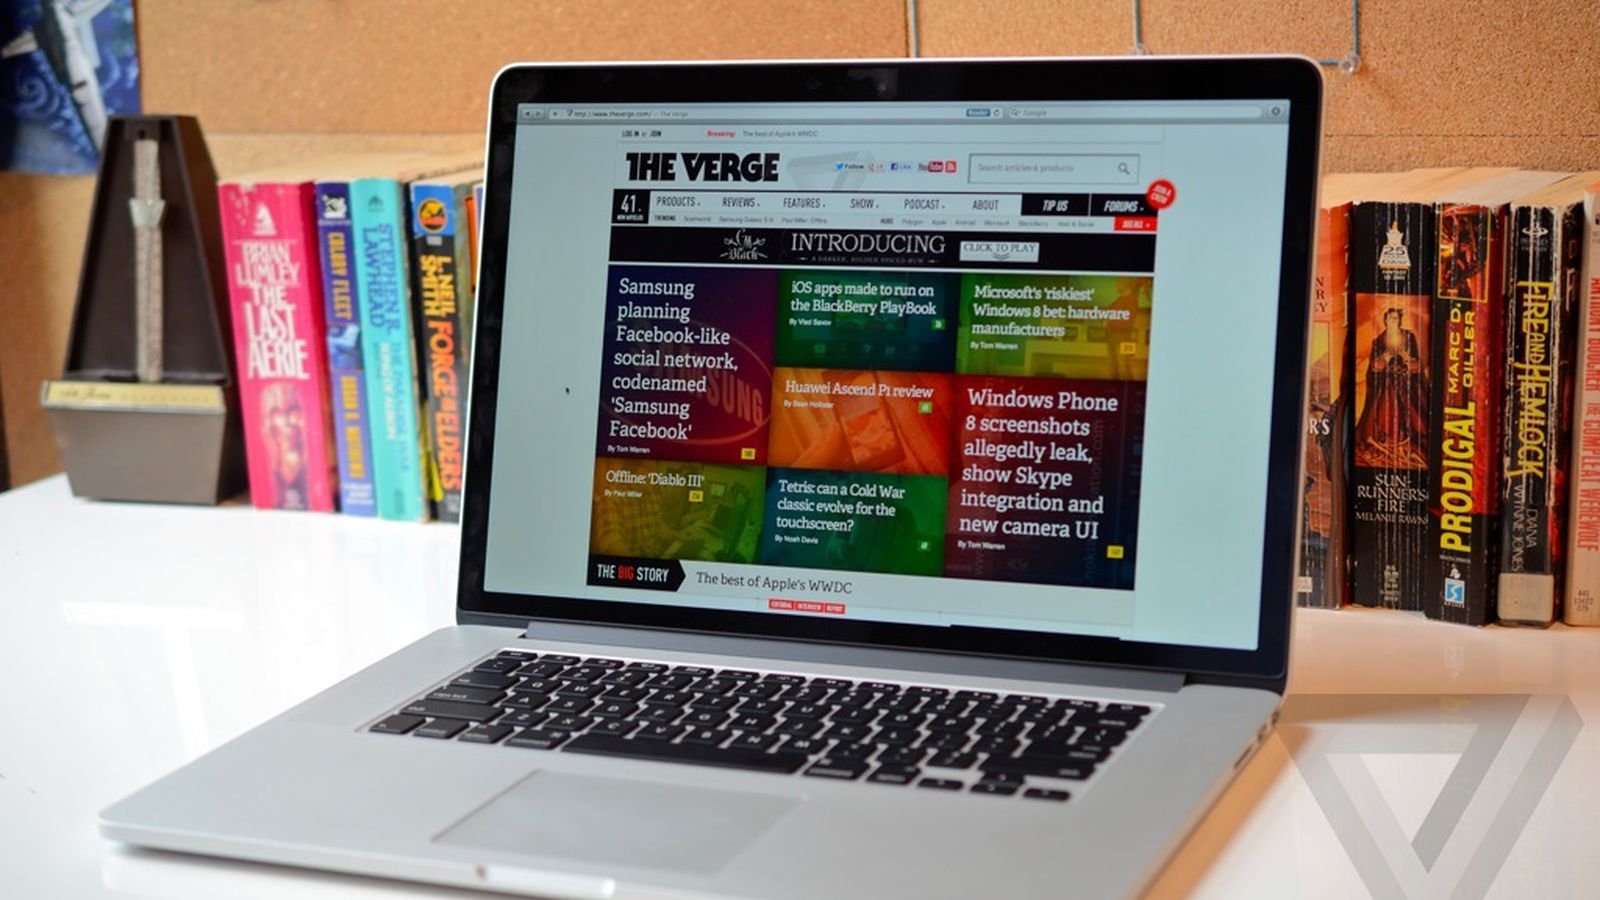 macbook pro with retina display review 15 inch the verge. Black Bedroom Furniture Sets. Home Design Ideas